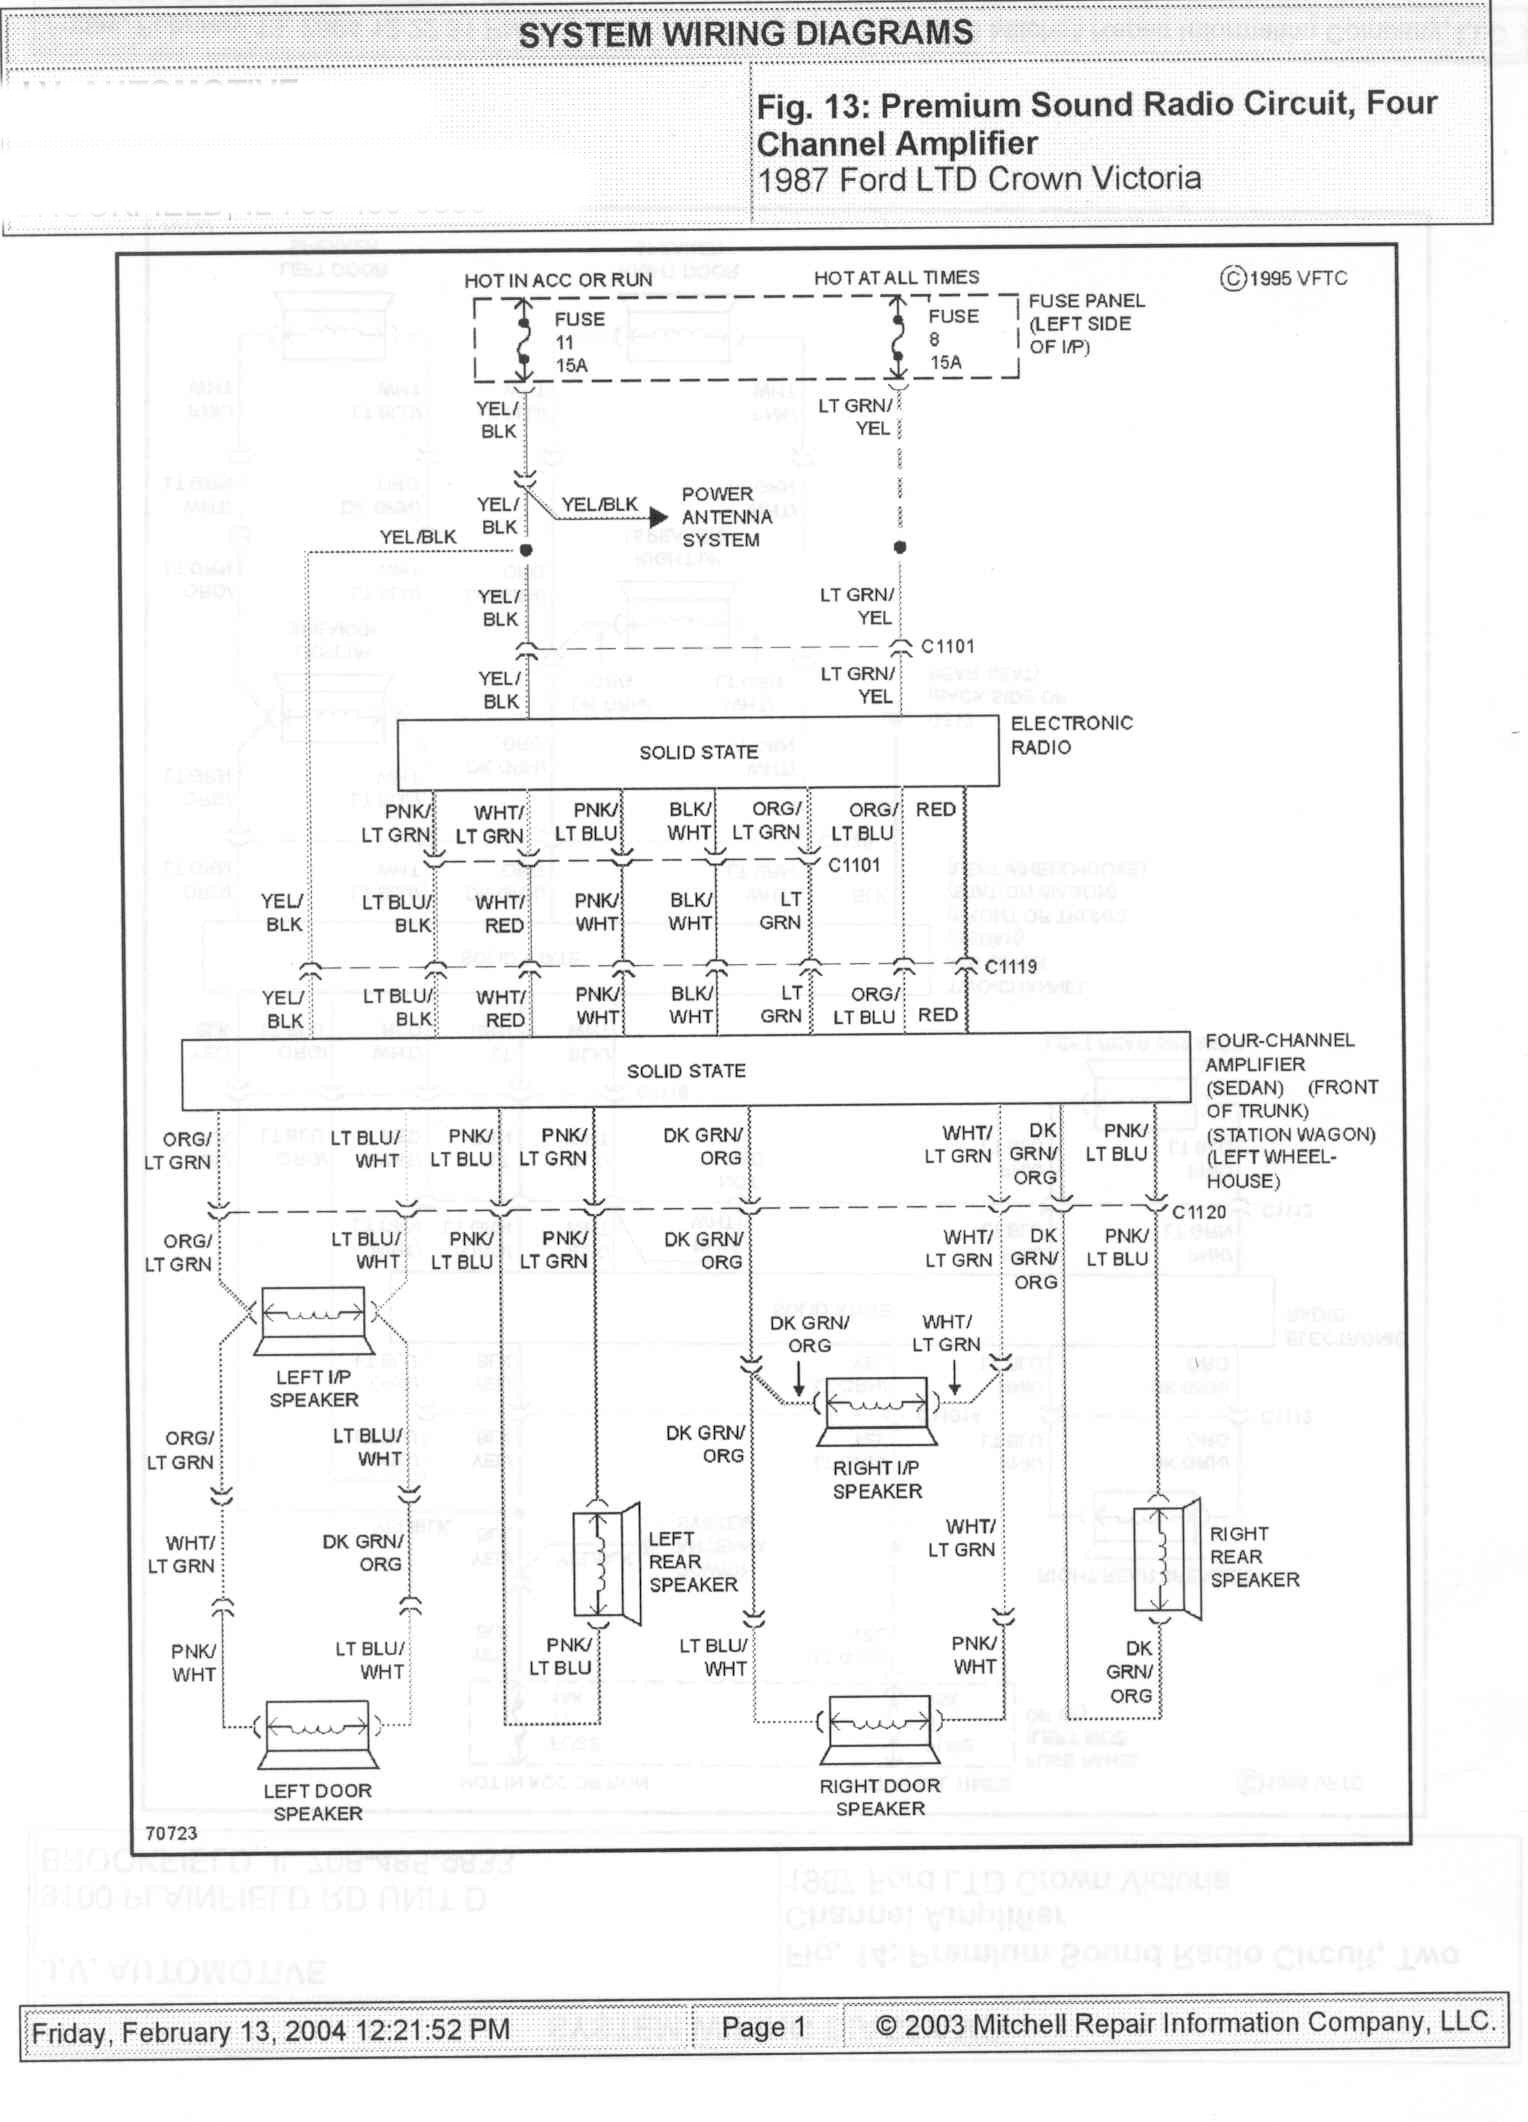 1985 ford radio wiring diagram 1985 ford econoline wiring diagram 1985 ford crown victoria ltd wire diagrams picture ...